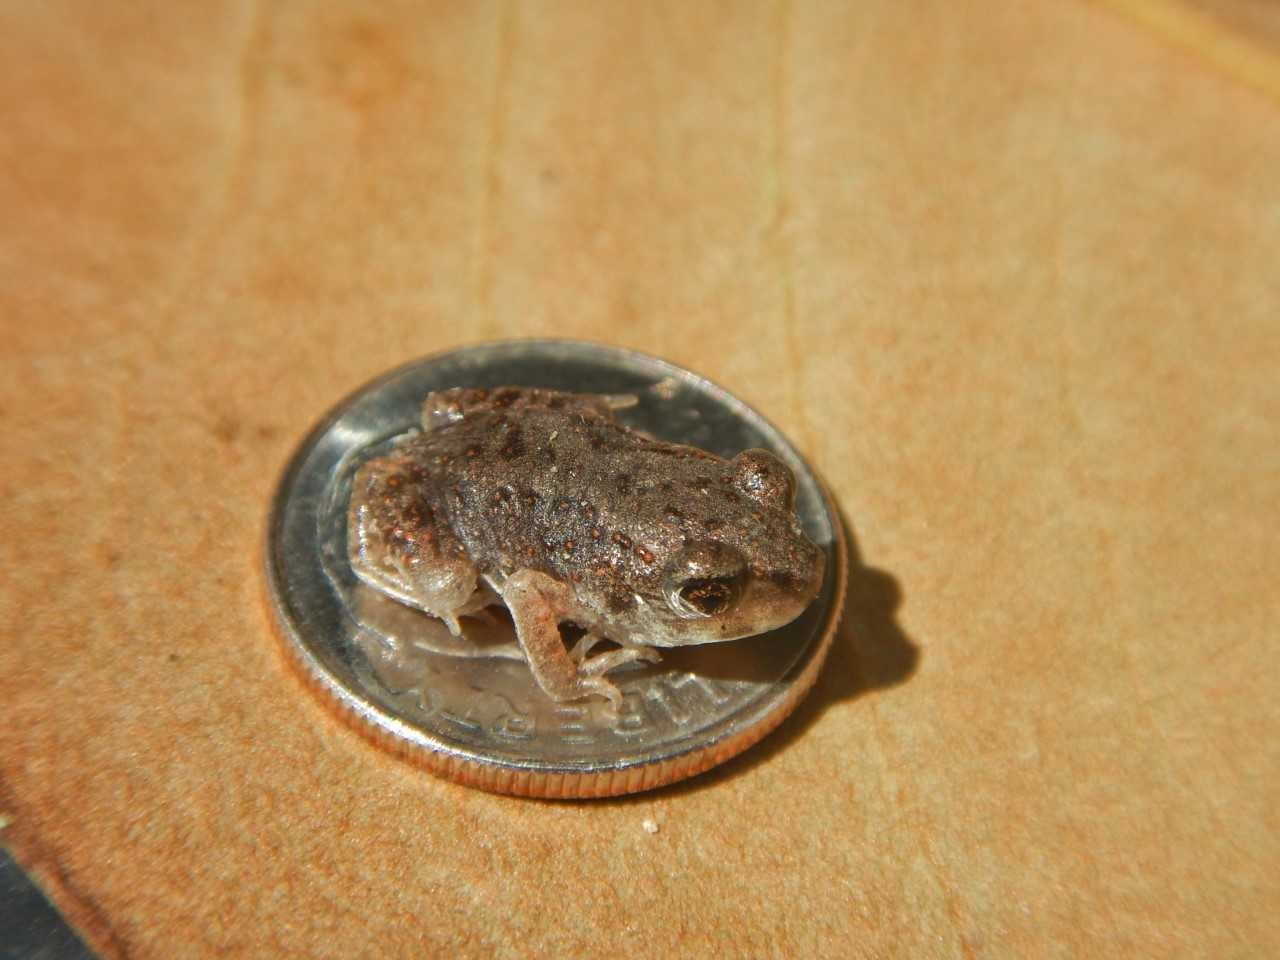 A close-up photo of one of the above-described raisin-sized froglets seated on a dime. It fits easily within the area of the dime, leaving a substantial margin uncovered: a very small frog.